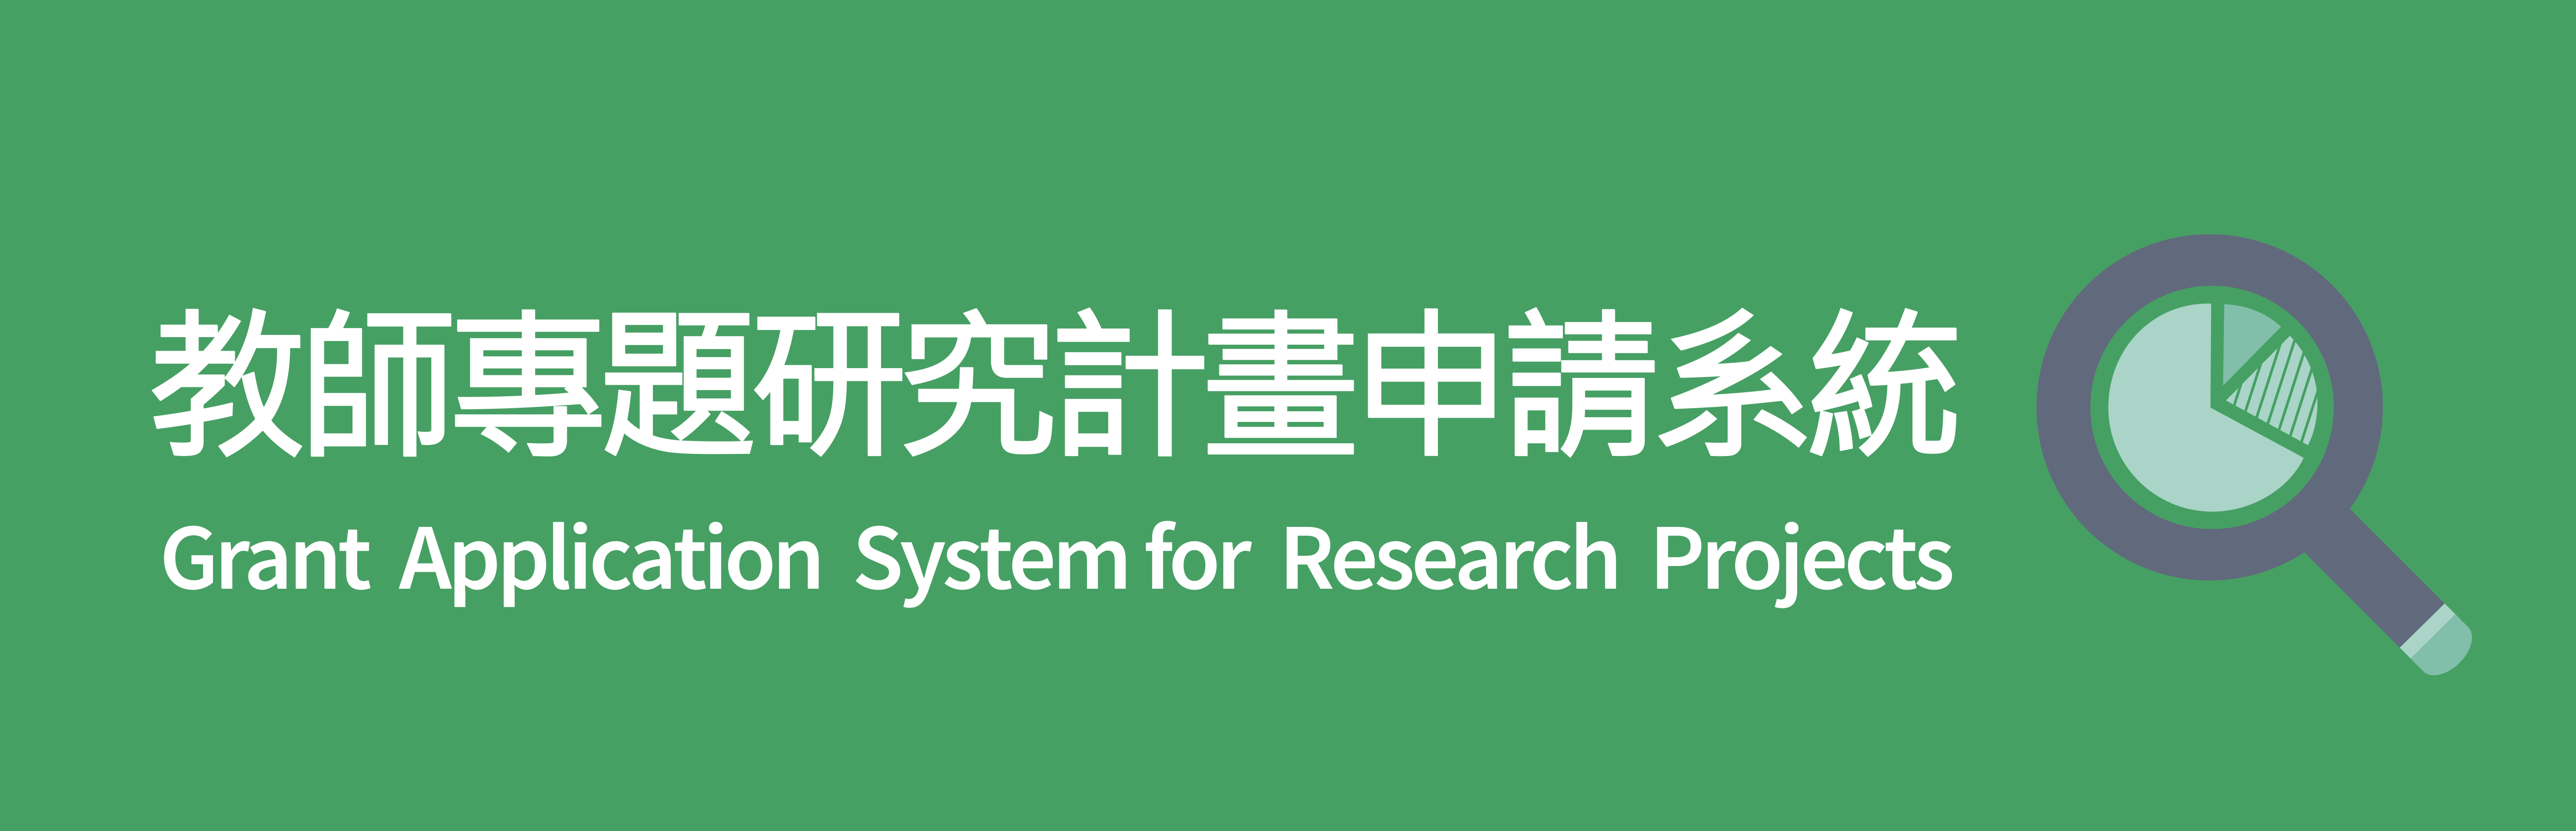 Grant Application System for Research Projects